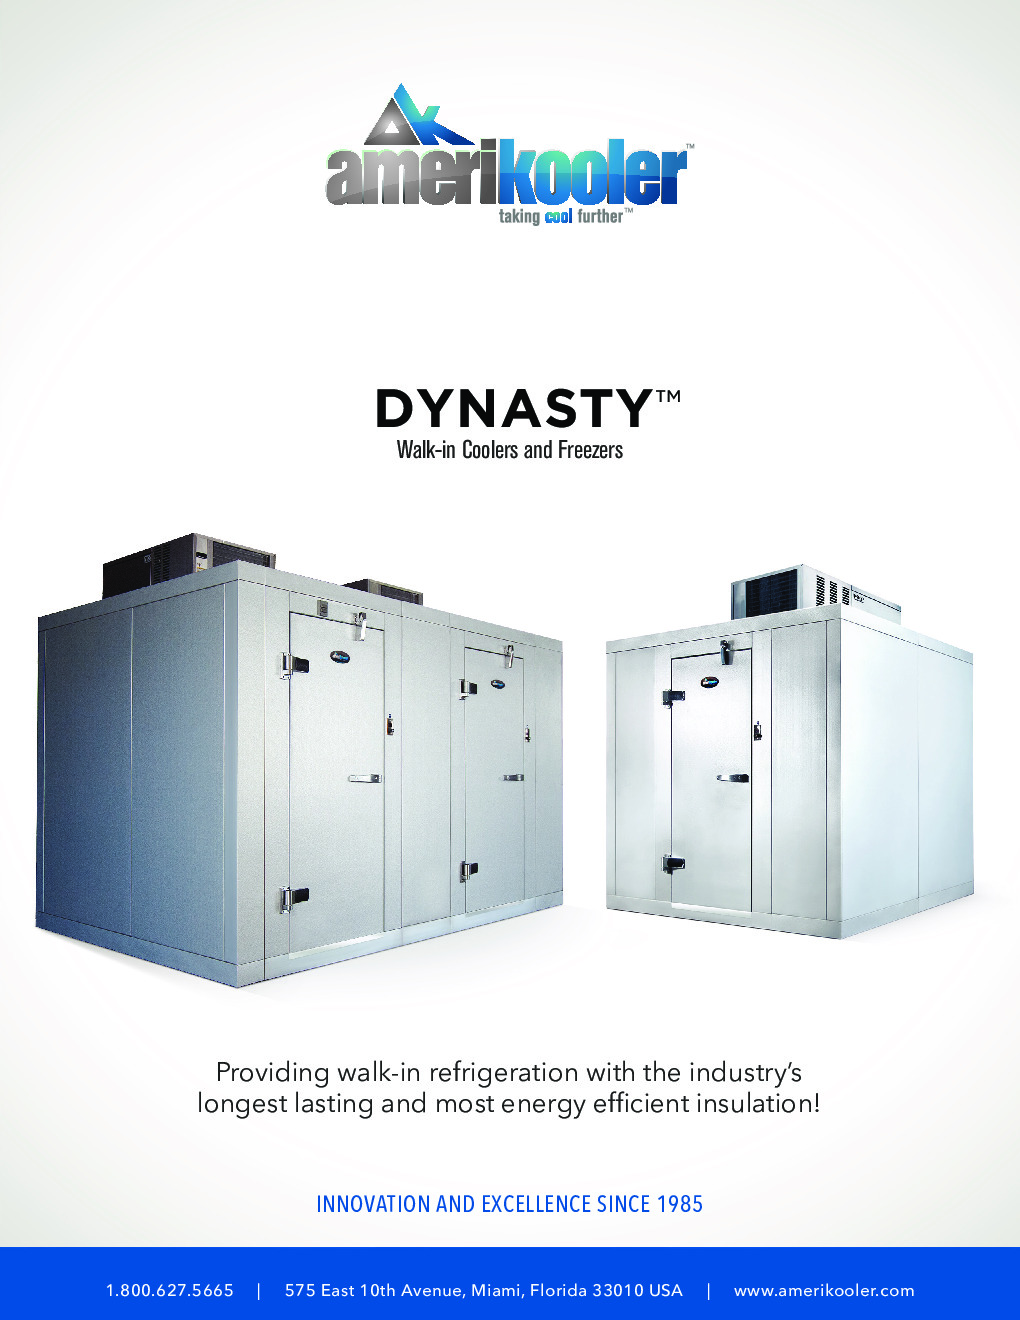 AmeriKooler DW081177N-5/6-RM 8' X 11' Walk-In Cooler, 6' L Cooler without Floor and 5' L Freezer, Remote